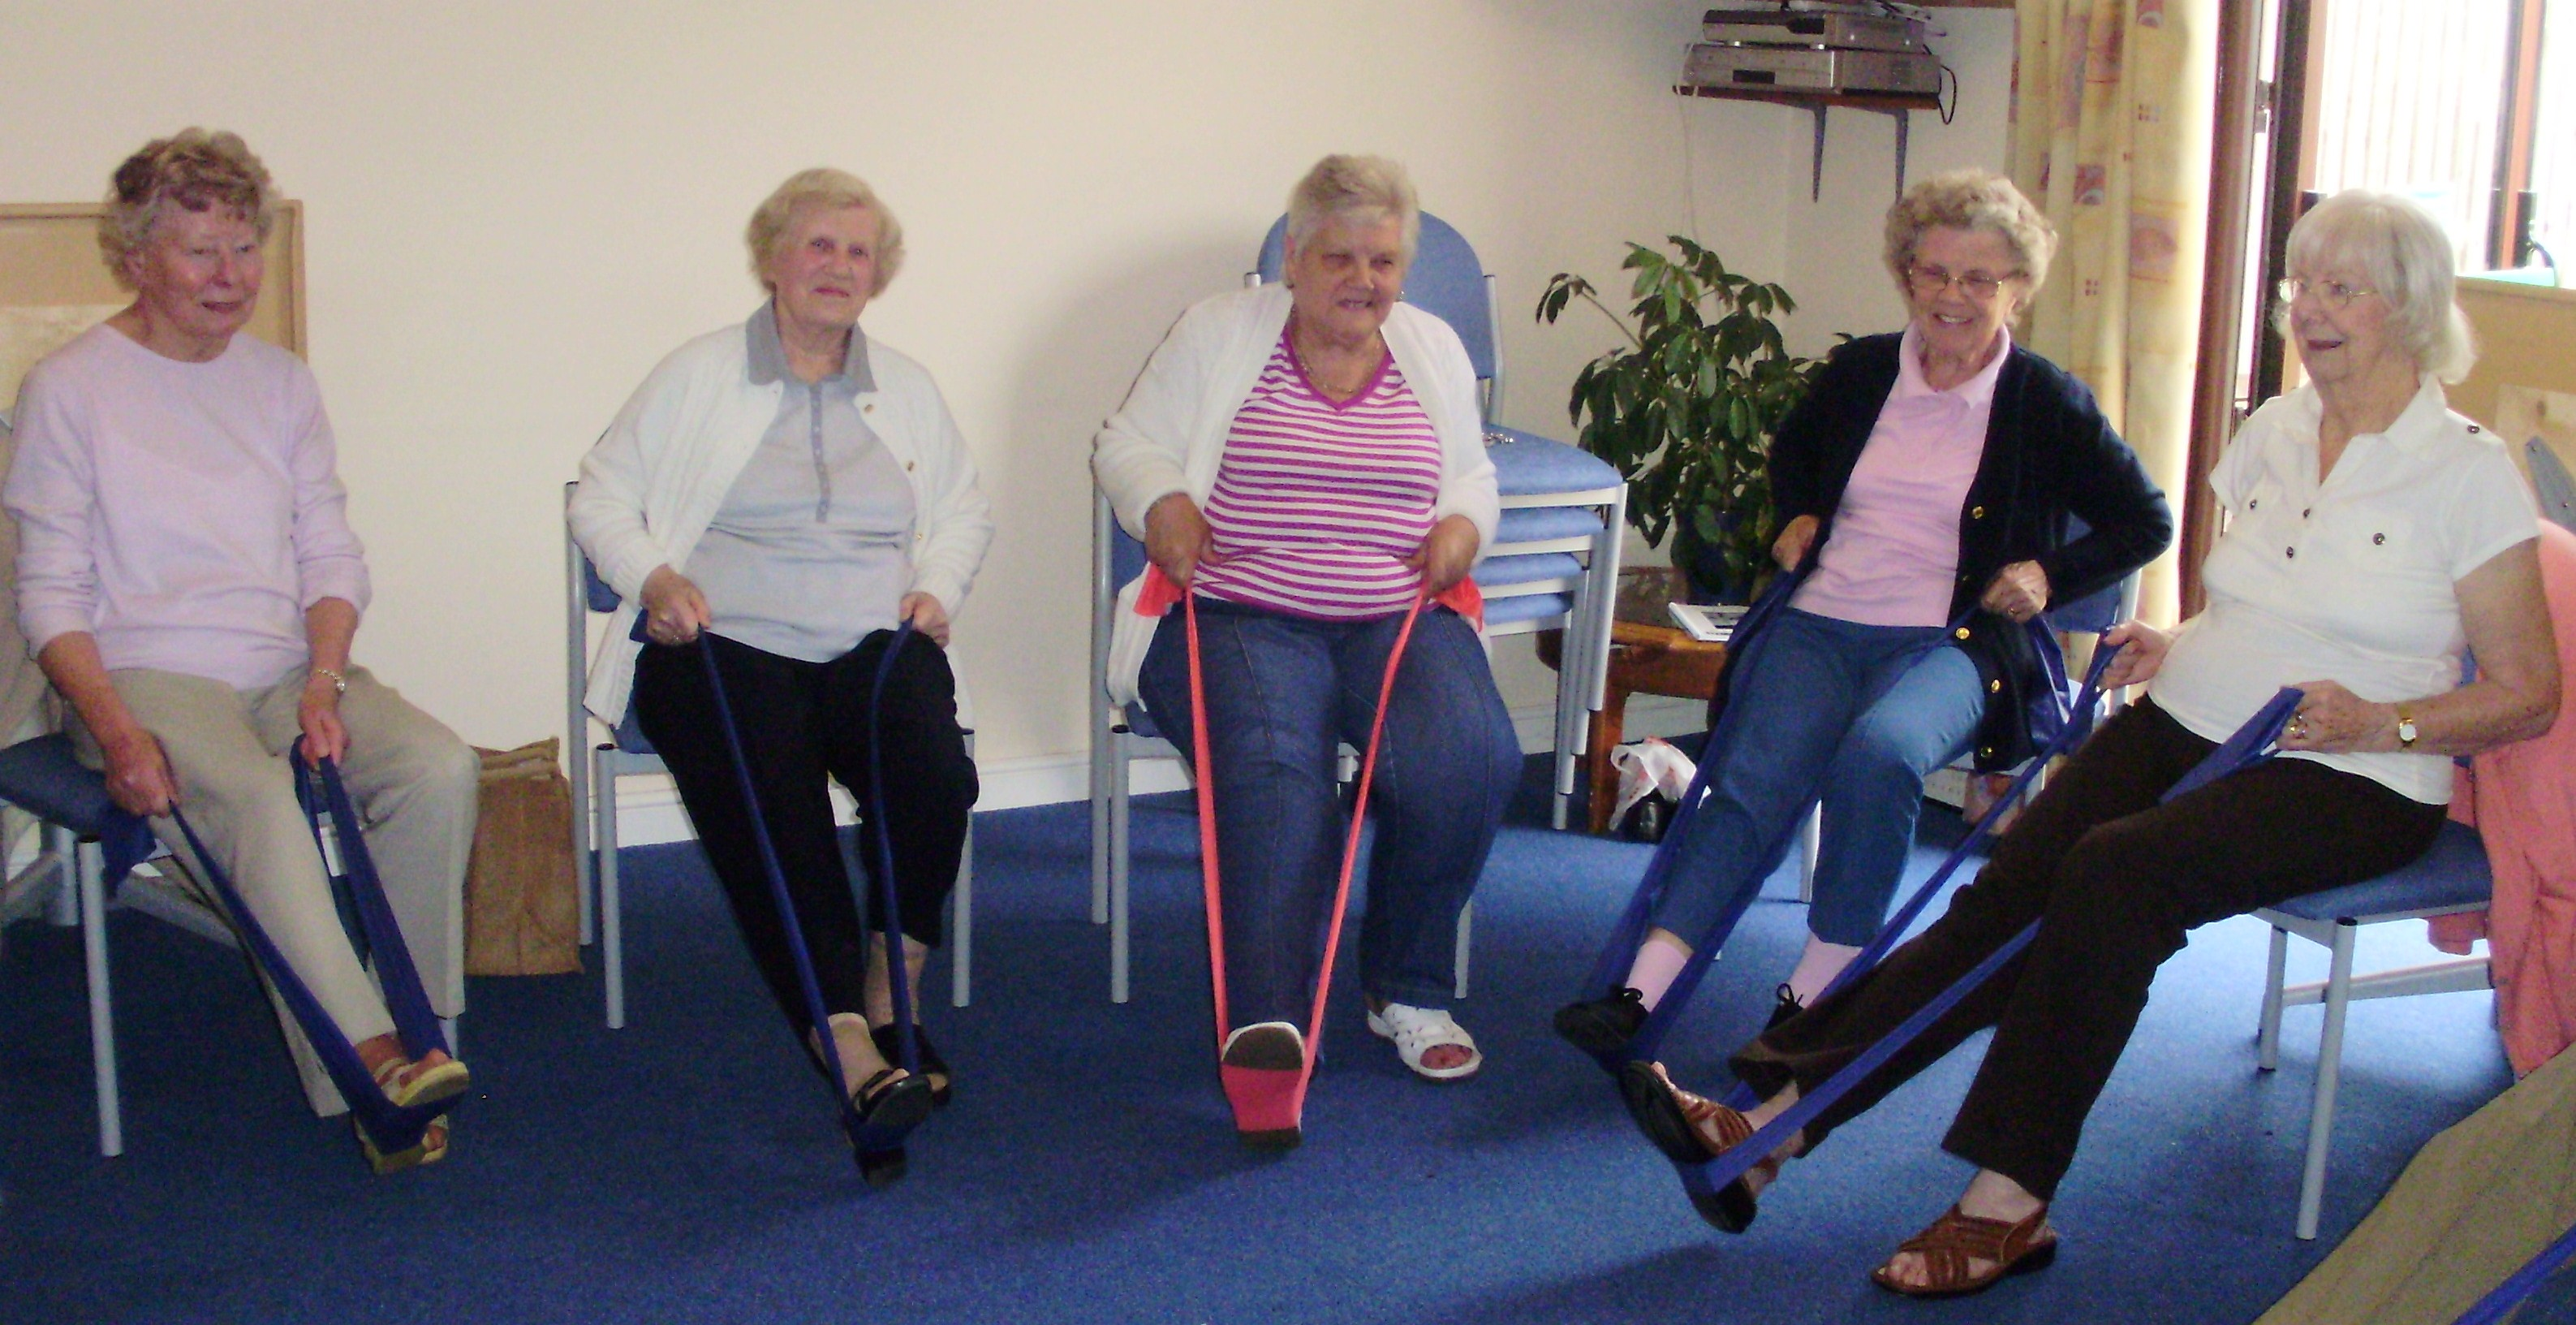 Chair exercise for seniors - Chair Aerobics Seniors Fitness Youthful Hearts